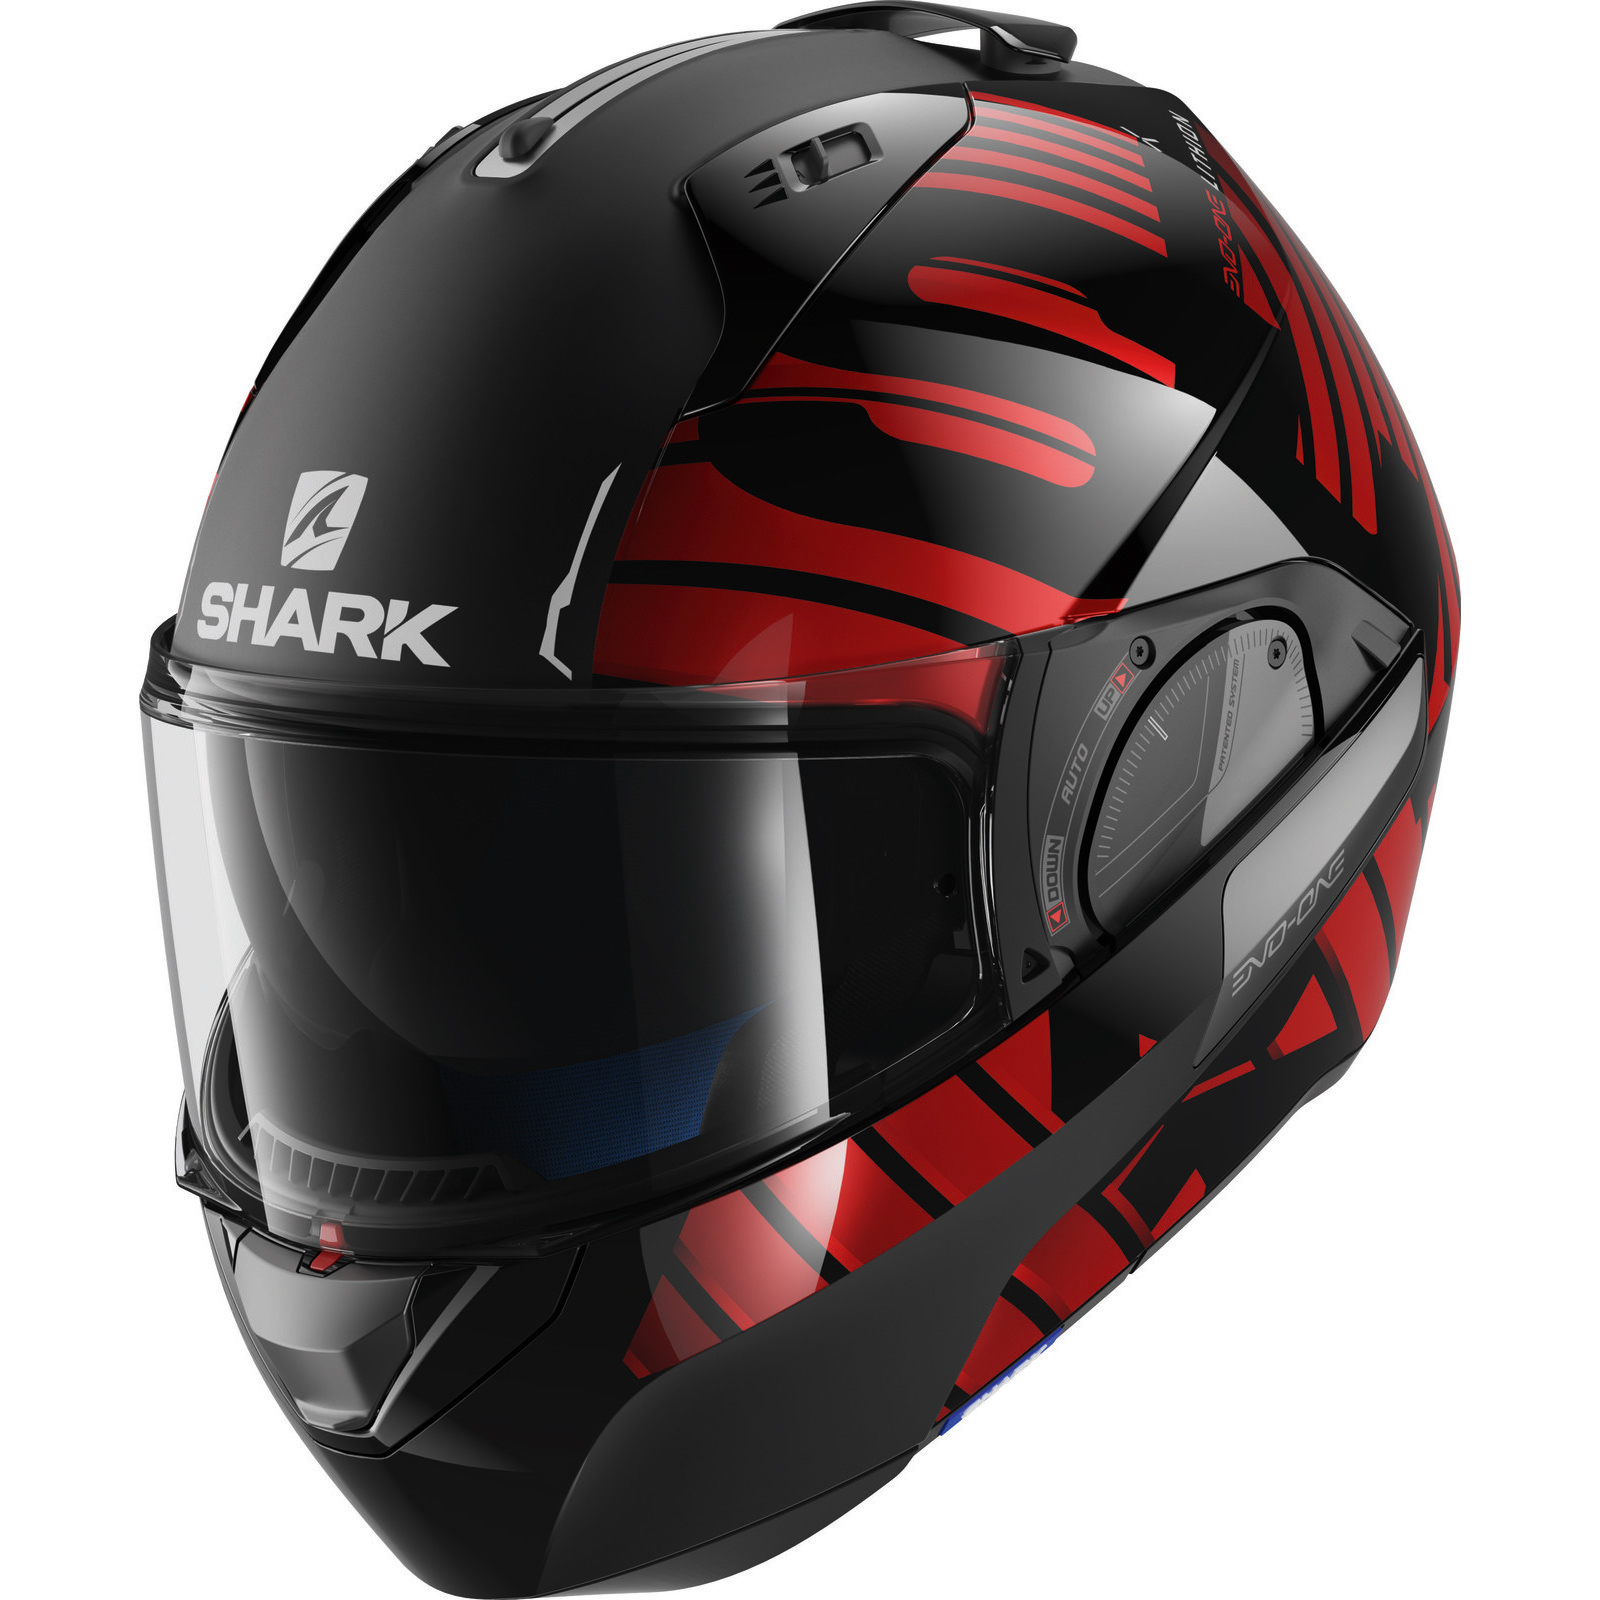 shark evo one 2 lithion black red flip front motorcycle helmet kur motorbike ece ebay. Black Bedroom Furniture Sets. Home Design Ideas